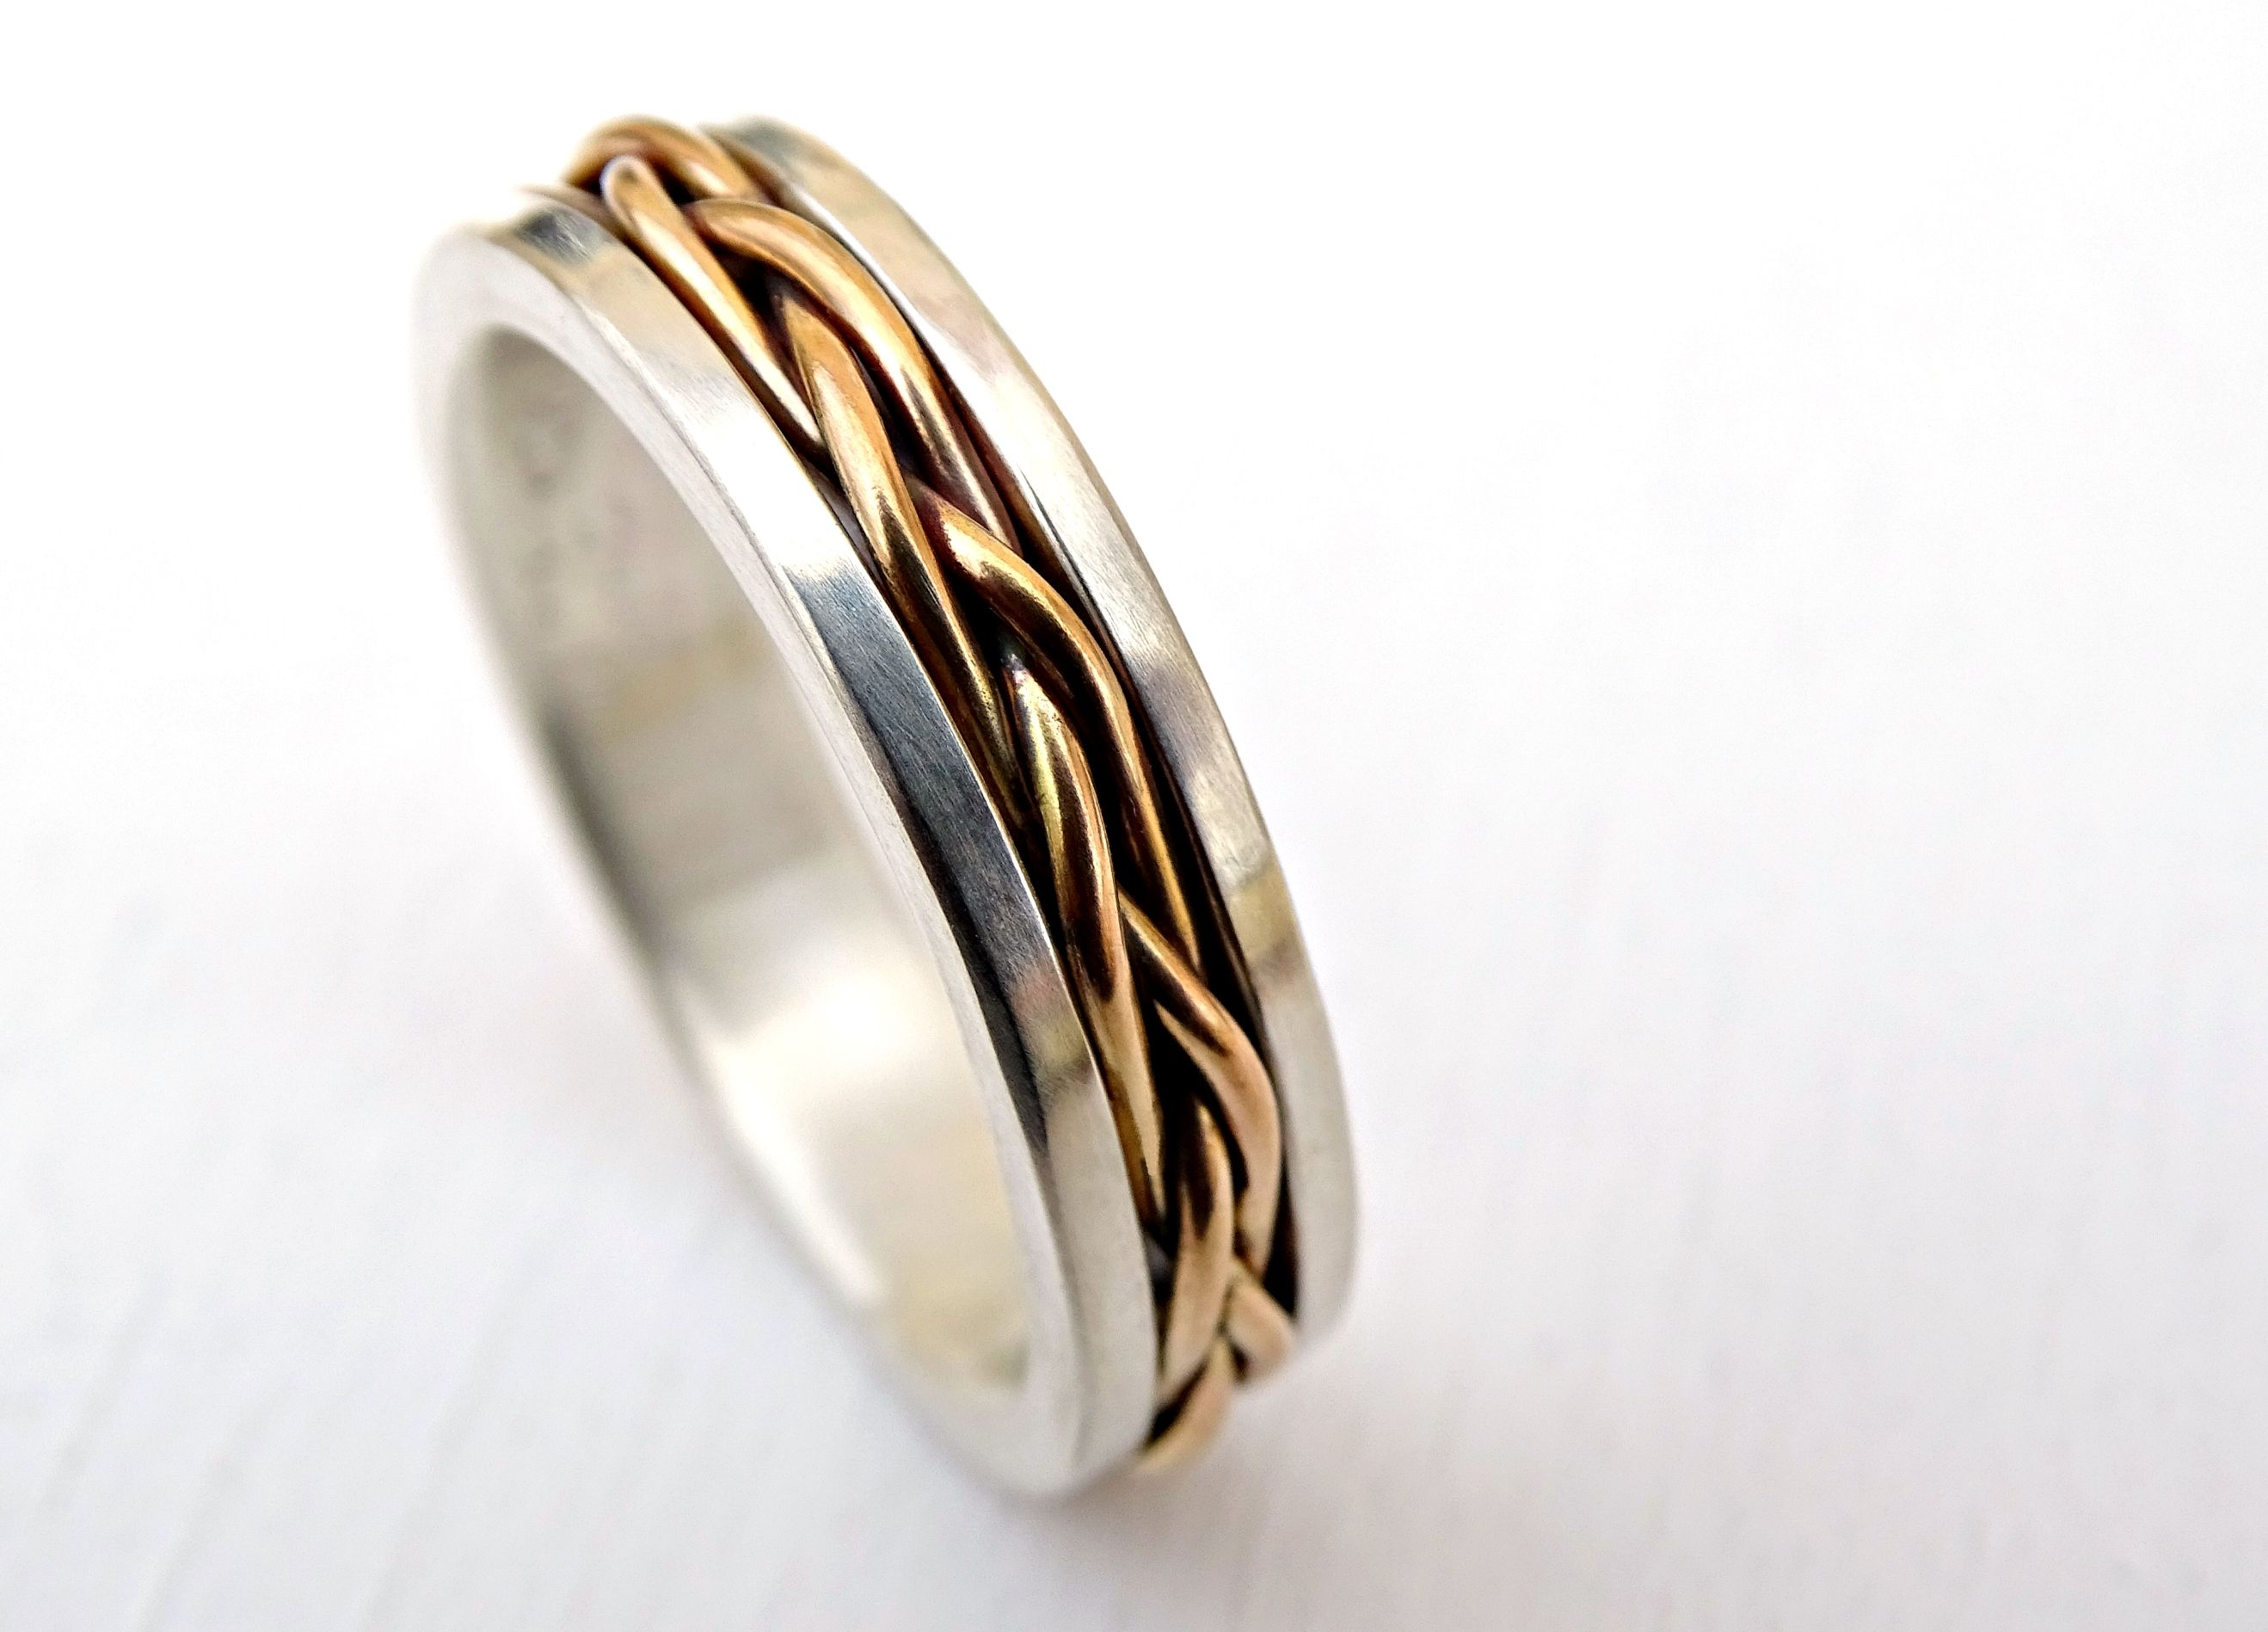 custom made celtic wedding band men gold braided wedding ring viking mens promise ring - Wedding Ring For Men